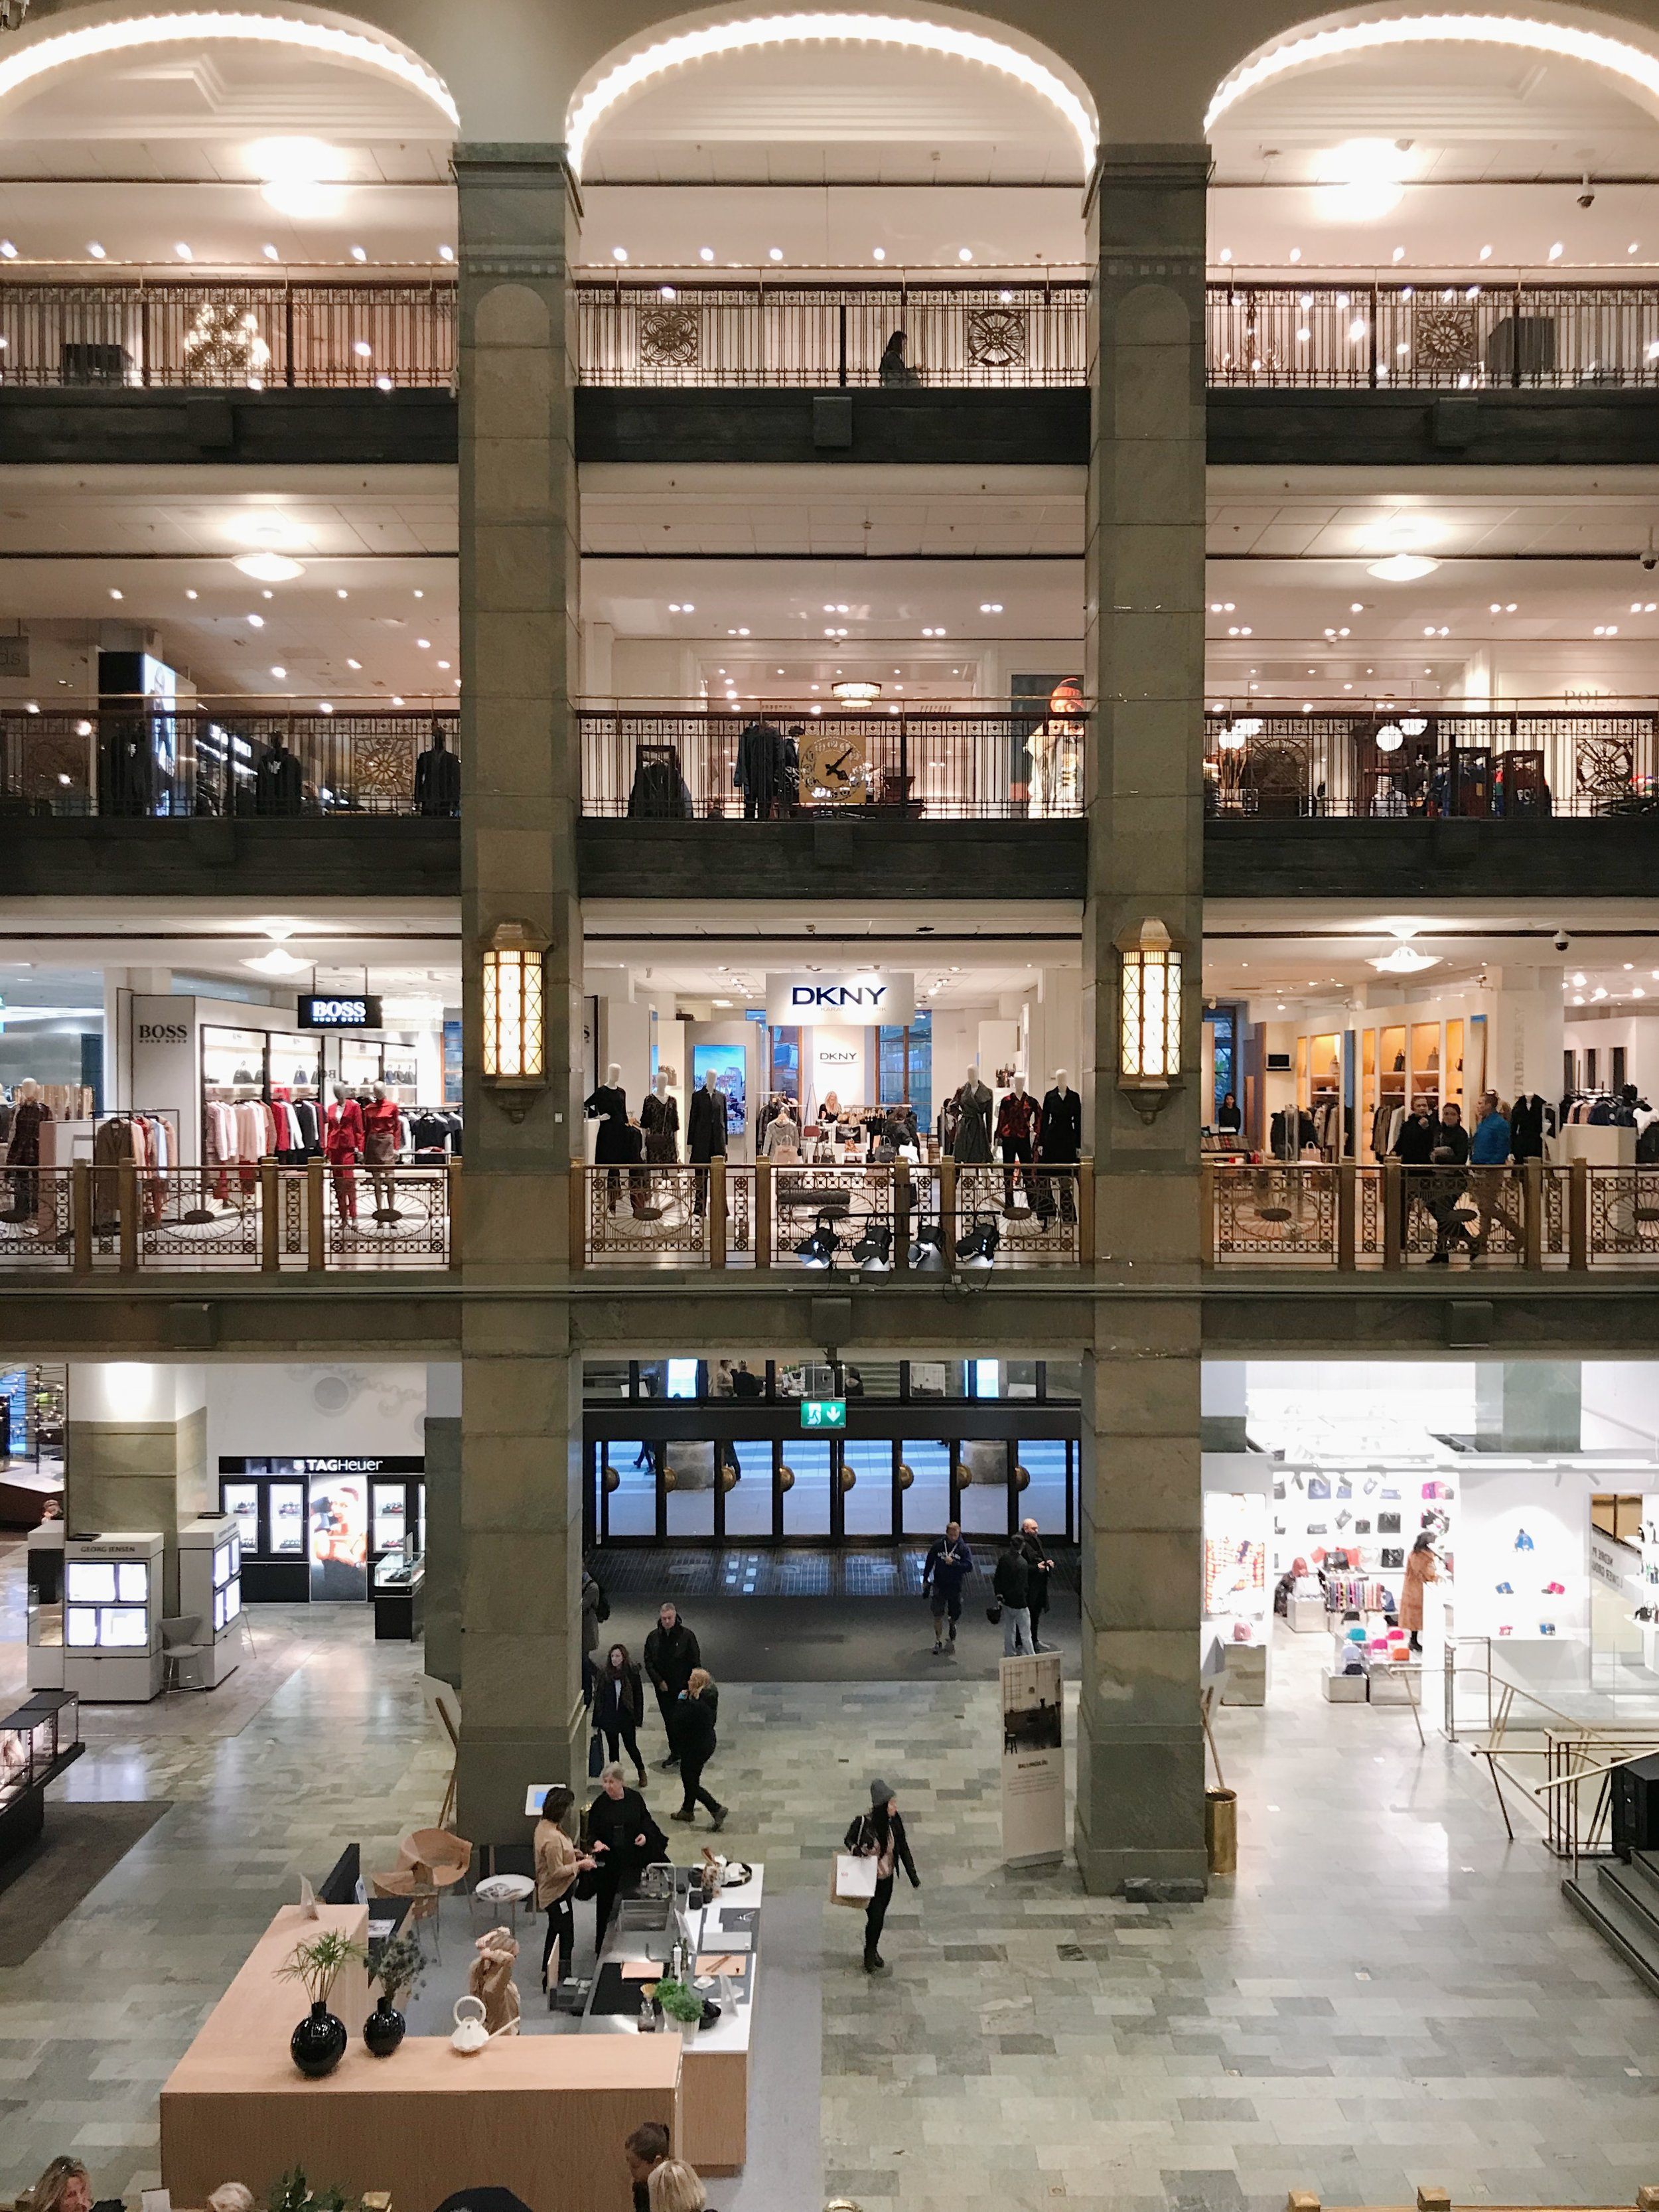 NK Department Store - One of my favorite ways to experience a new country or city is through their fashion. And what better place to do so than a grand department store? This one has a beautiful atrium in the center that's just begging for a picture. Go up a couple of floors for the best vantage point. And if you're a fan of Ganni like I am, they've got a huge selection here.